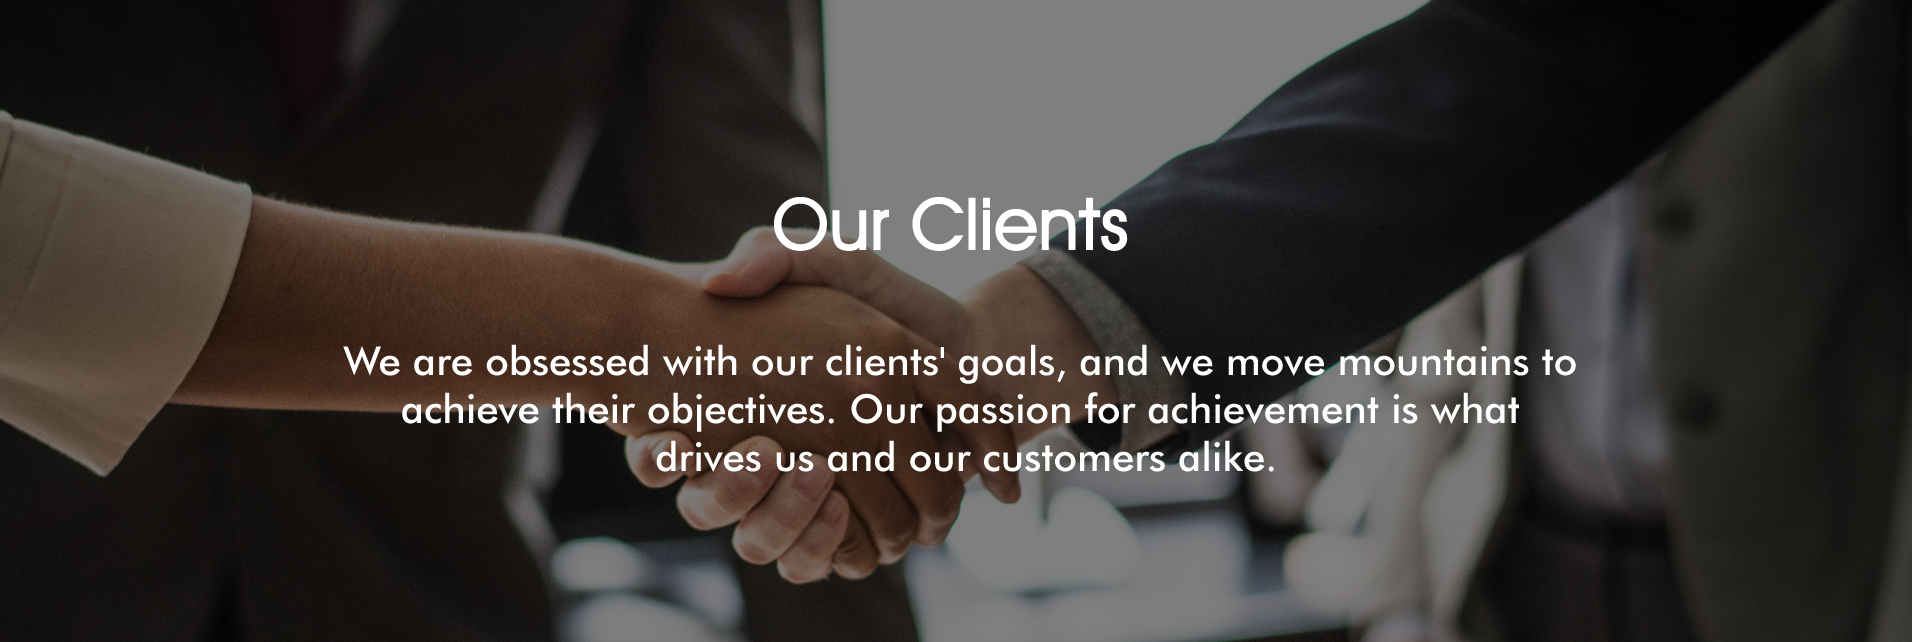 We are obsessed with our clients' goals, and we move mountains to achieve their objectives.Our passion for achievement is what drives us and our customers alike.